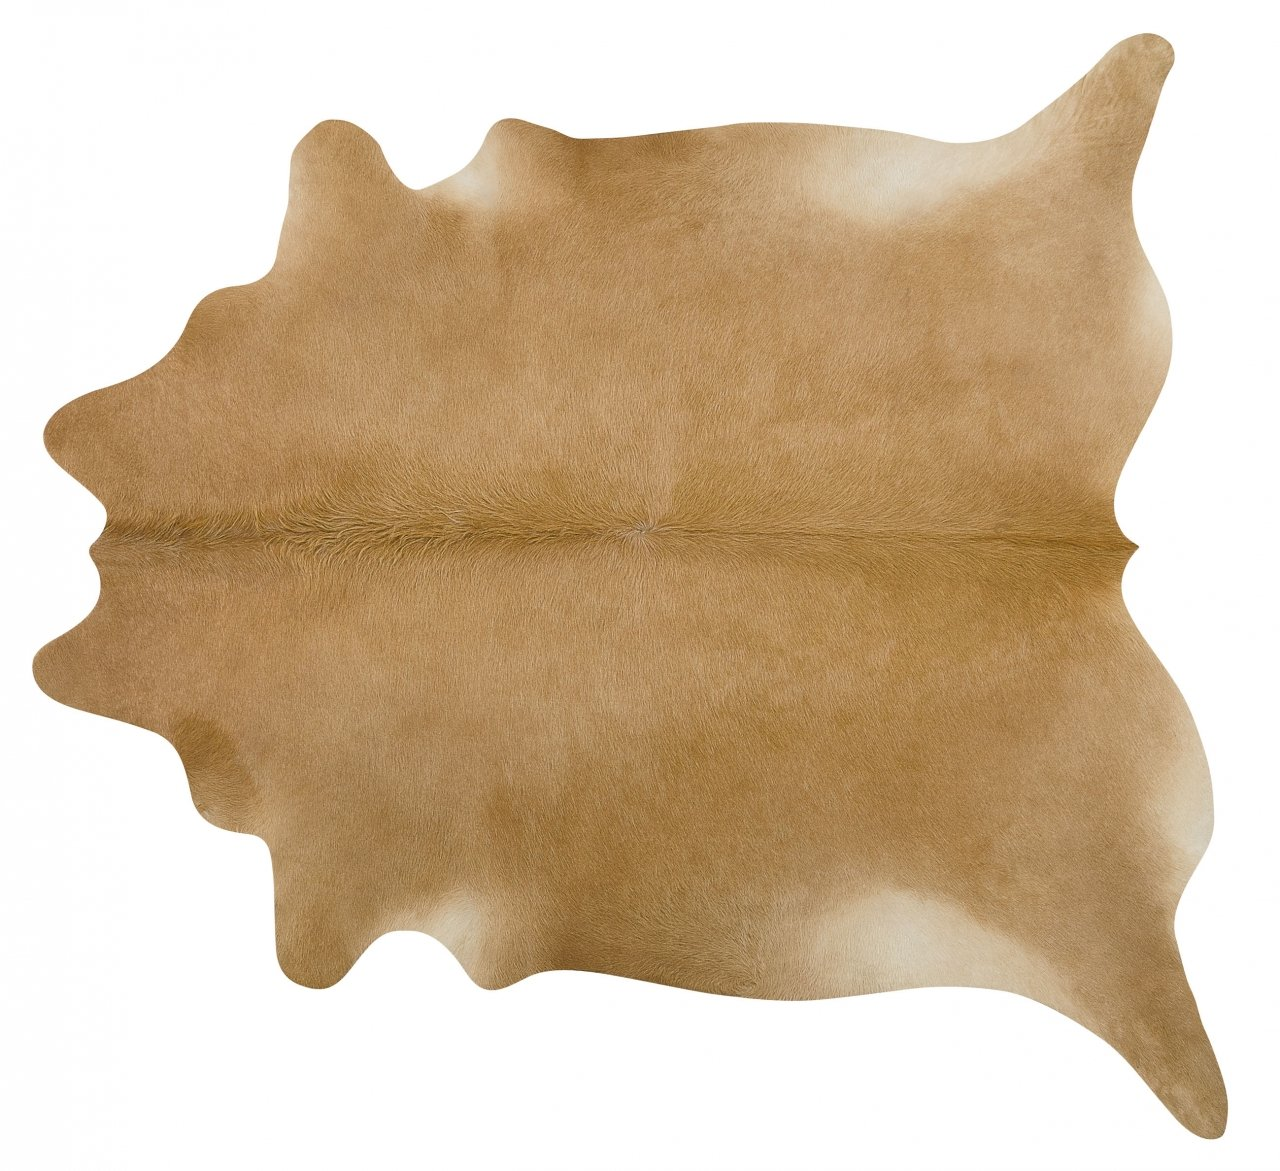 Brazilian Palomino Cowhide Rug Cow Hide Area Rugs - Size XL